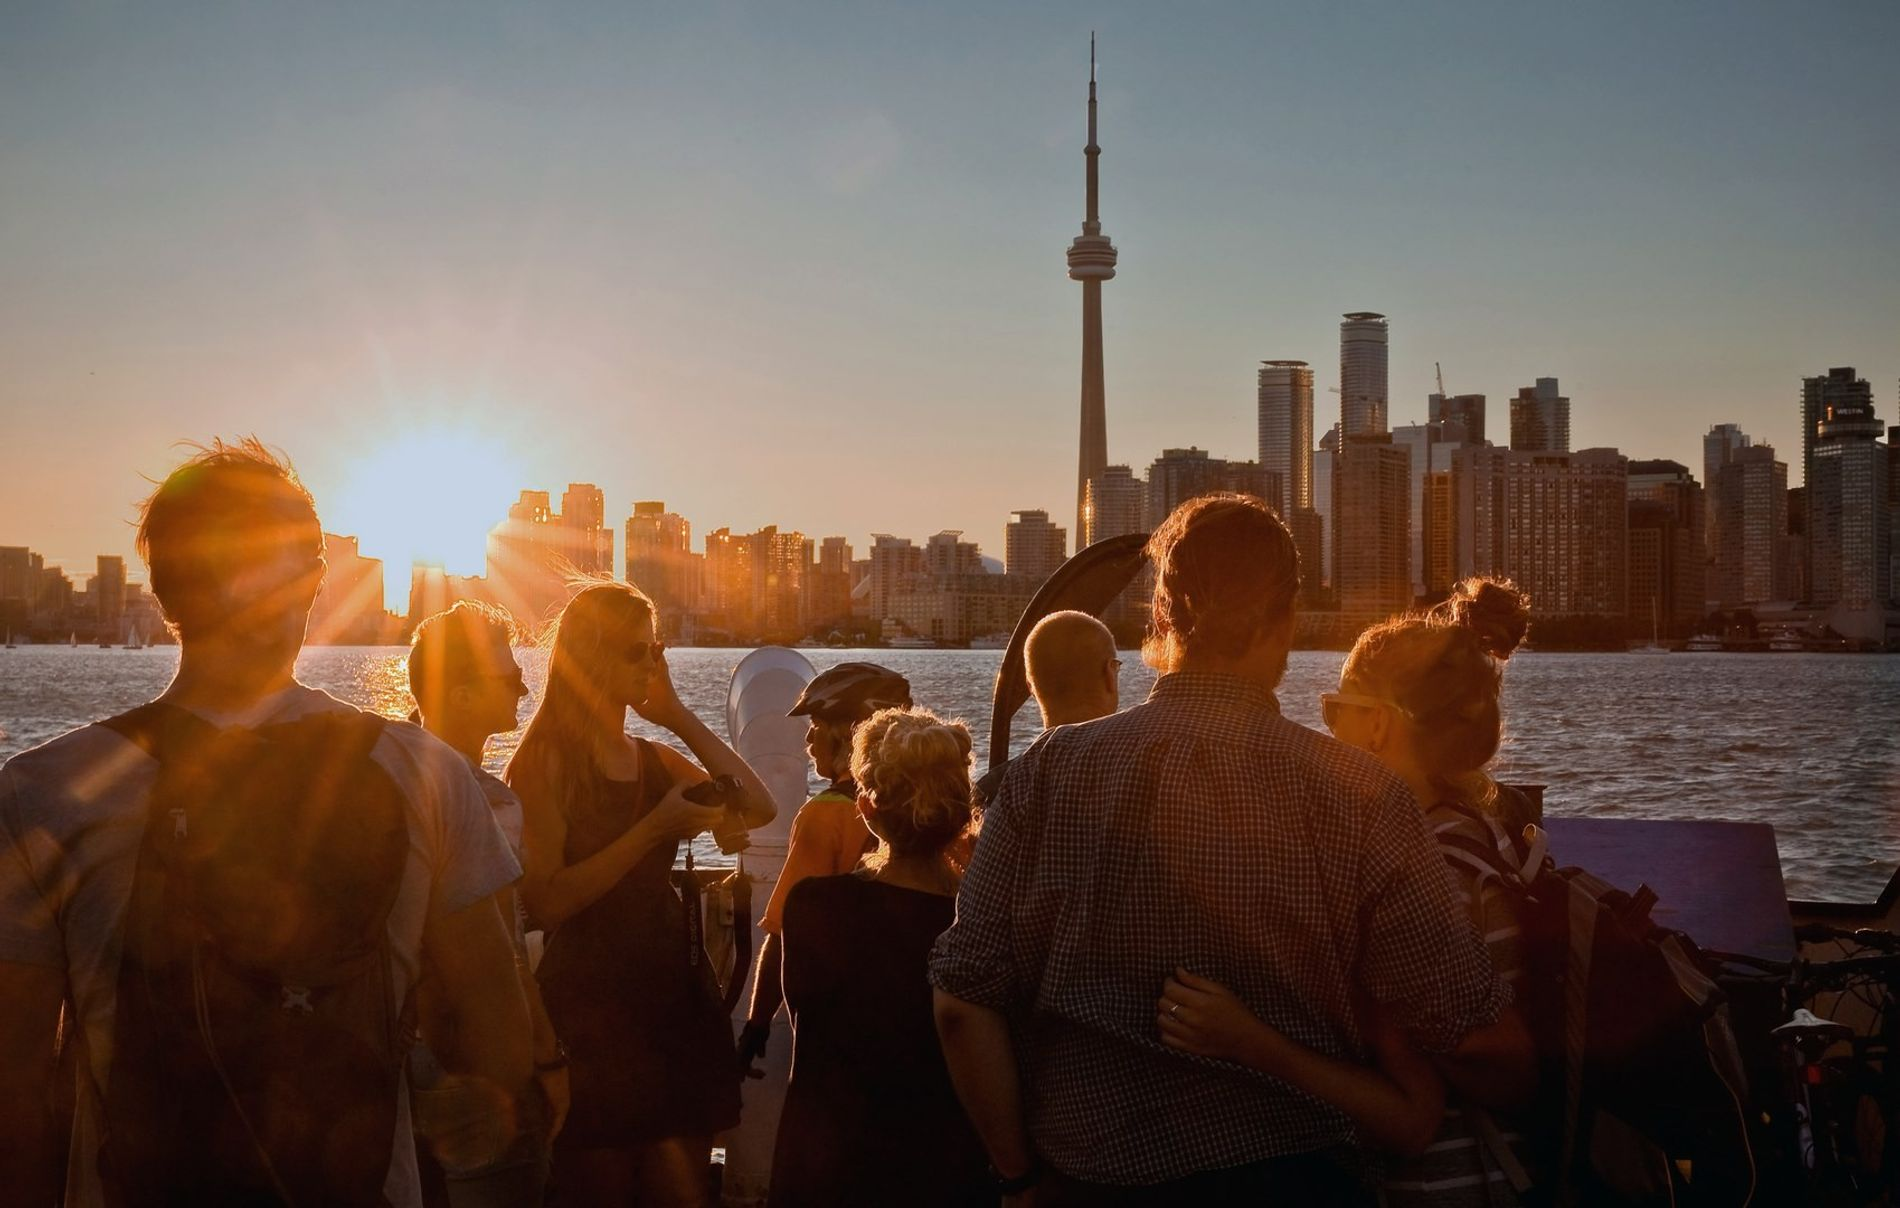 View of Toronto skyline from the Waterfront and Toronto Islands neighbourhood.